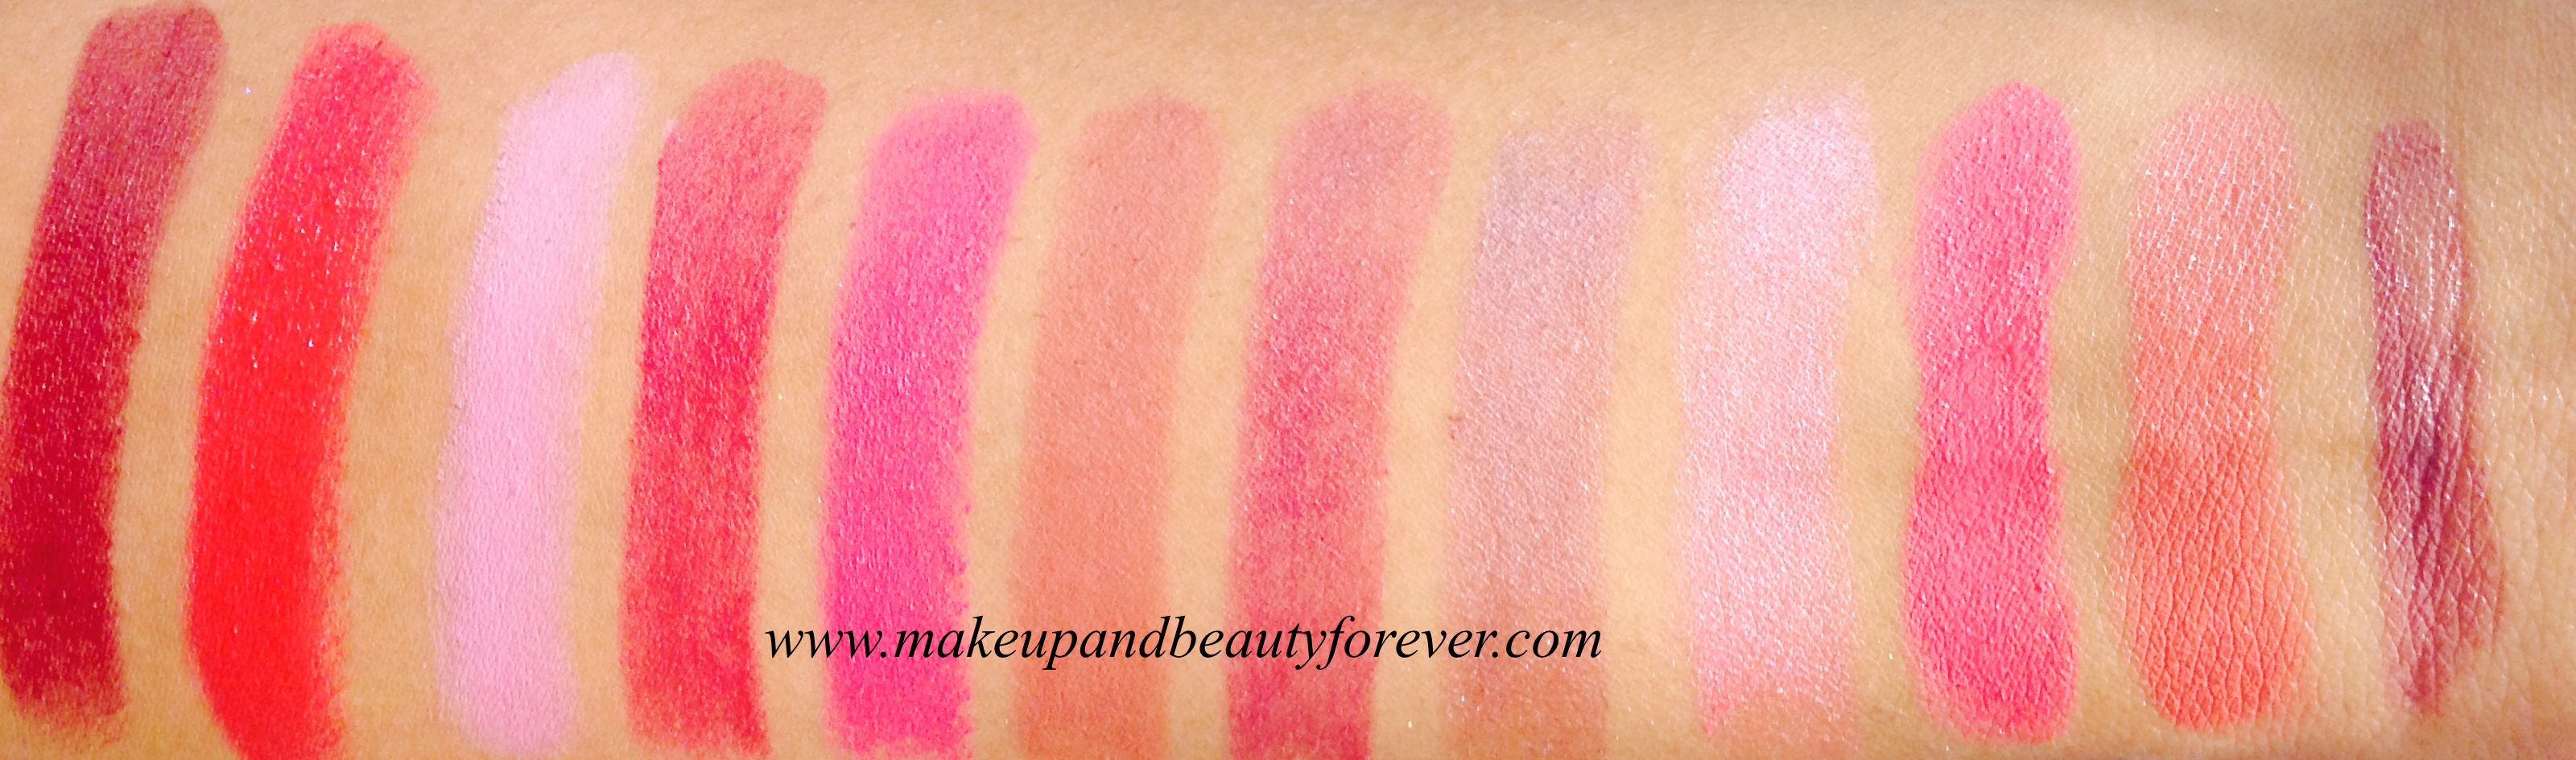 Maybelline 14 Hour Lipstick Price Maybelline Super Stay 14 Hour